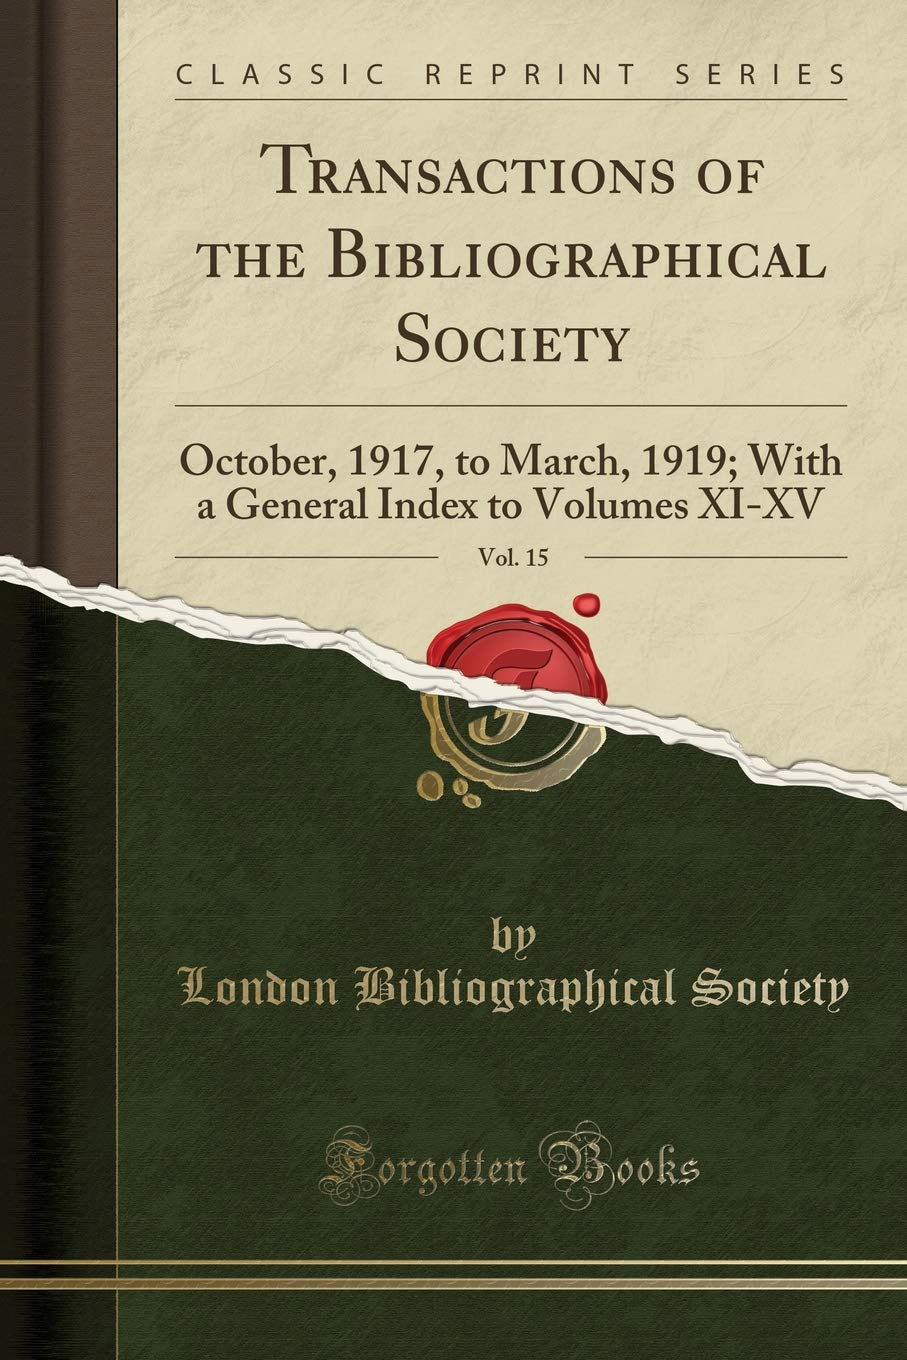 Download Transactions of the Bibliographical Society, Vol. 15: October, 1917, to March, 1919; With a General Index to Volumes XI-XV (Classic Reprint) ebook